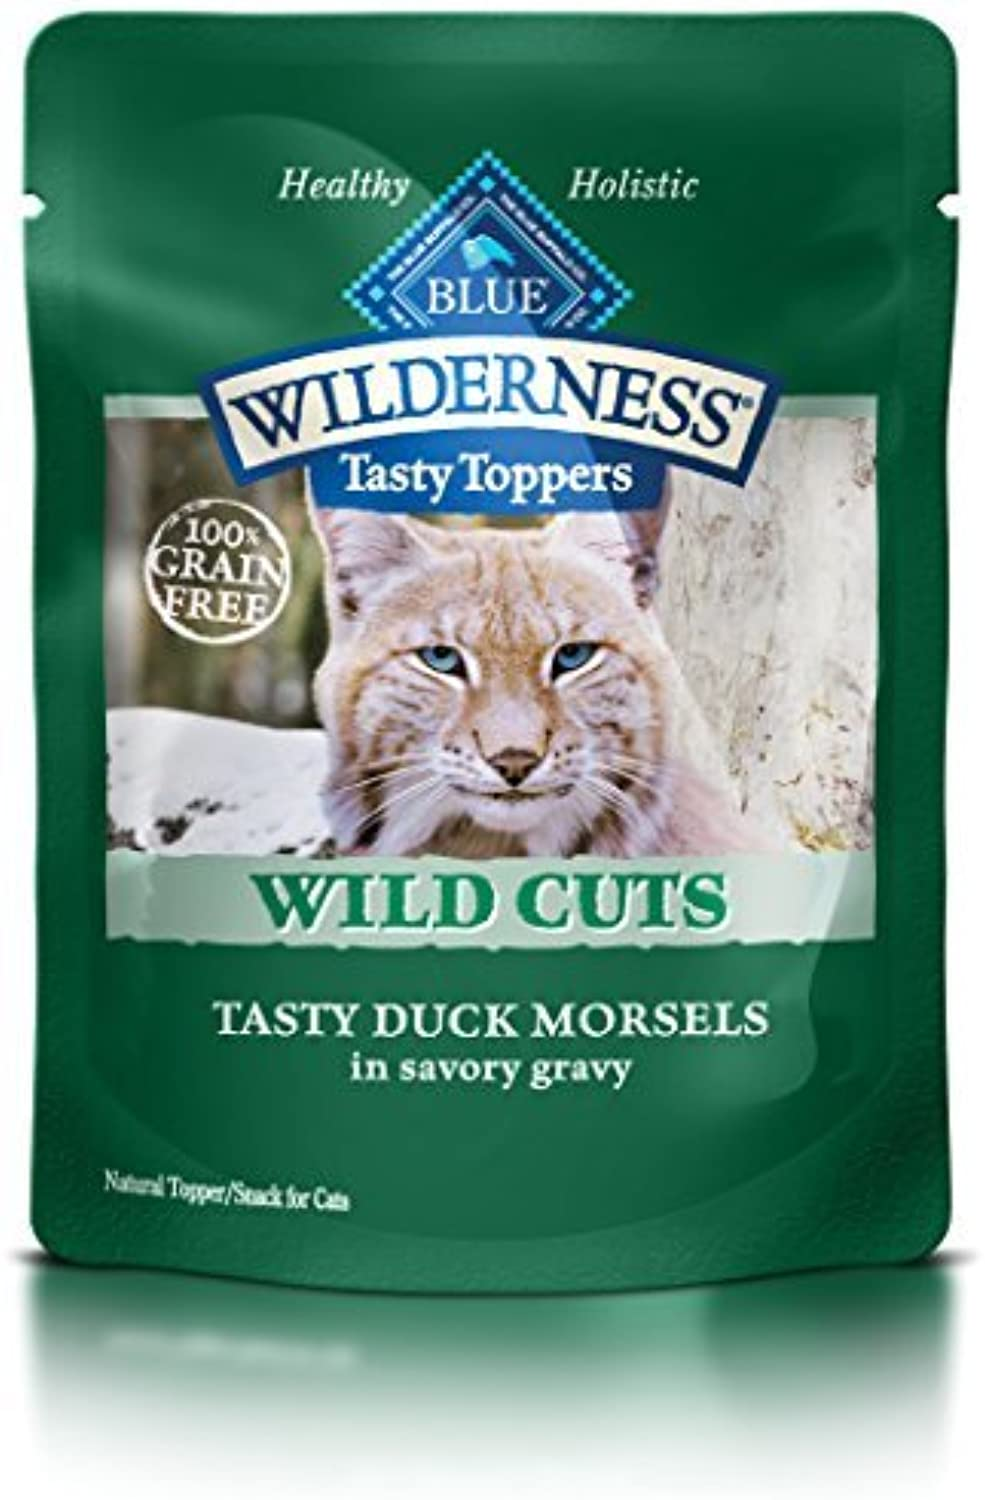 bluee Buffalo Wild Cuts Tasty Toppers Tasty Duck Morsels Savory Gravy Wet Cat Food, 3 oz Can, Pack of 24 by blueE WILDERNESS